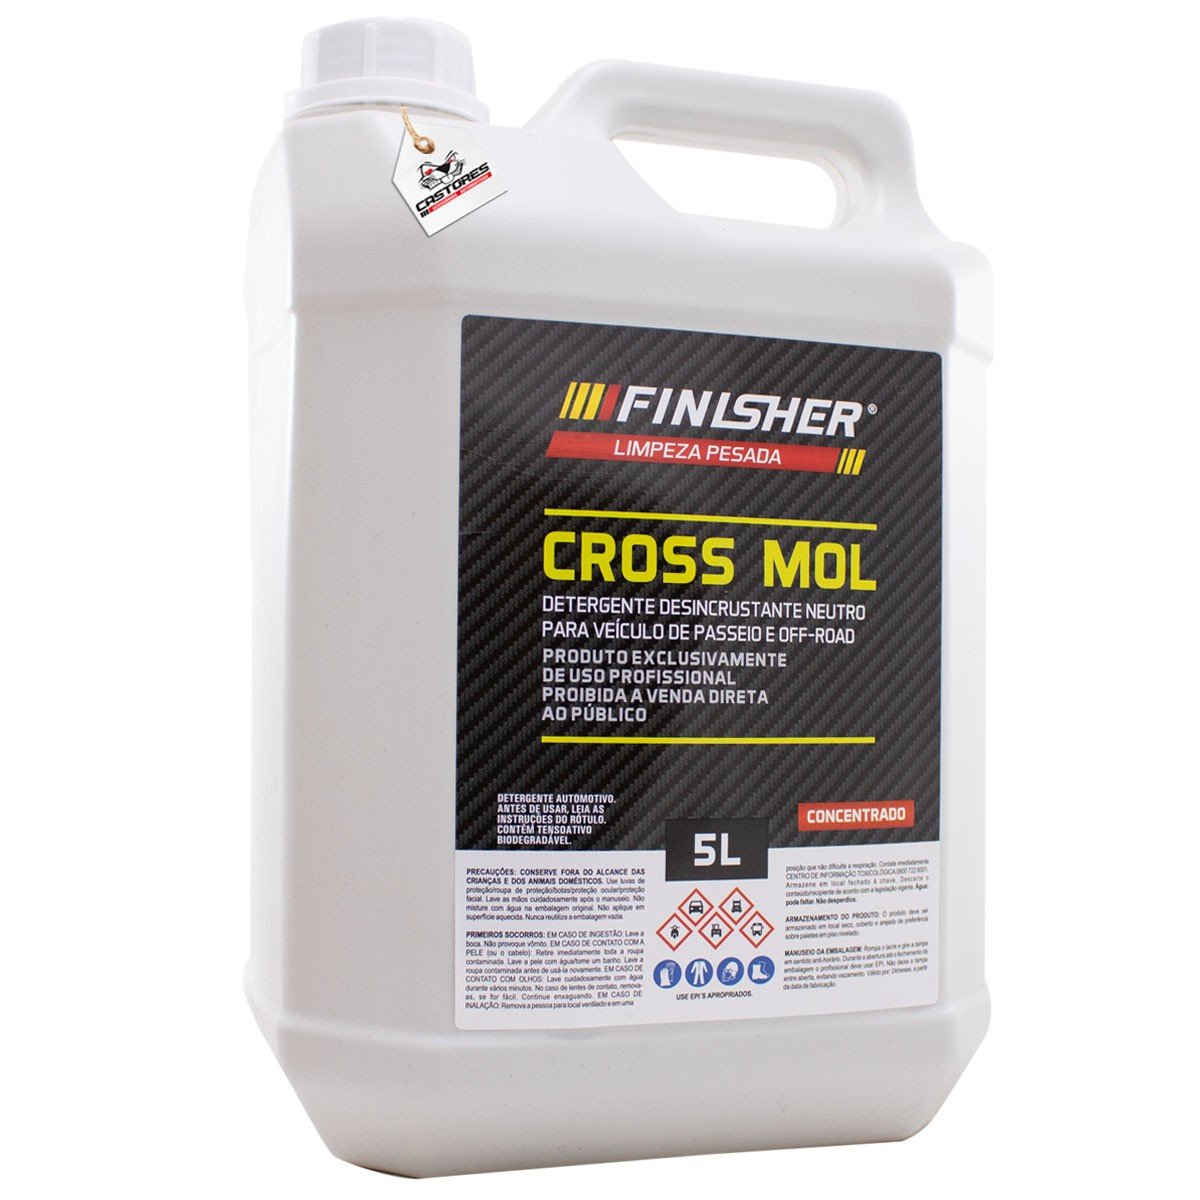 Finisher Cross Mol Desincrustante Neutro - Concentrado 5L